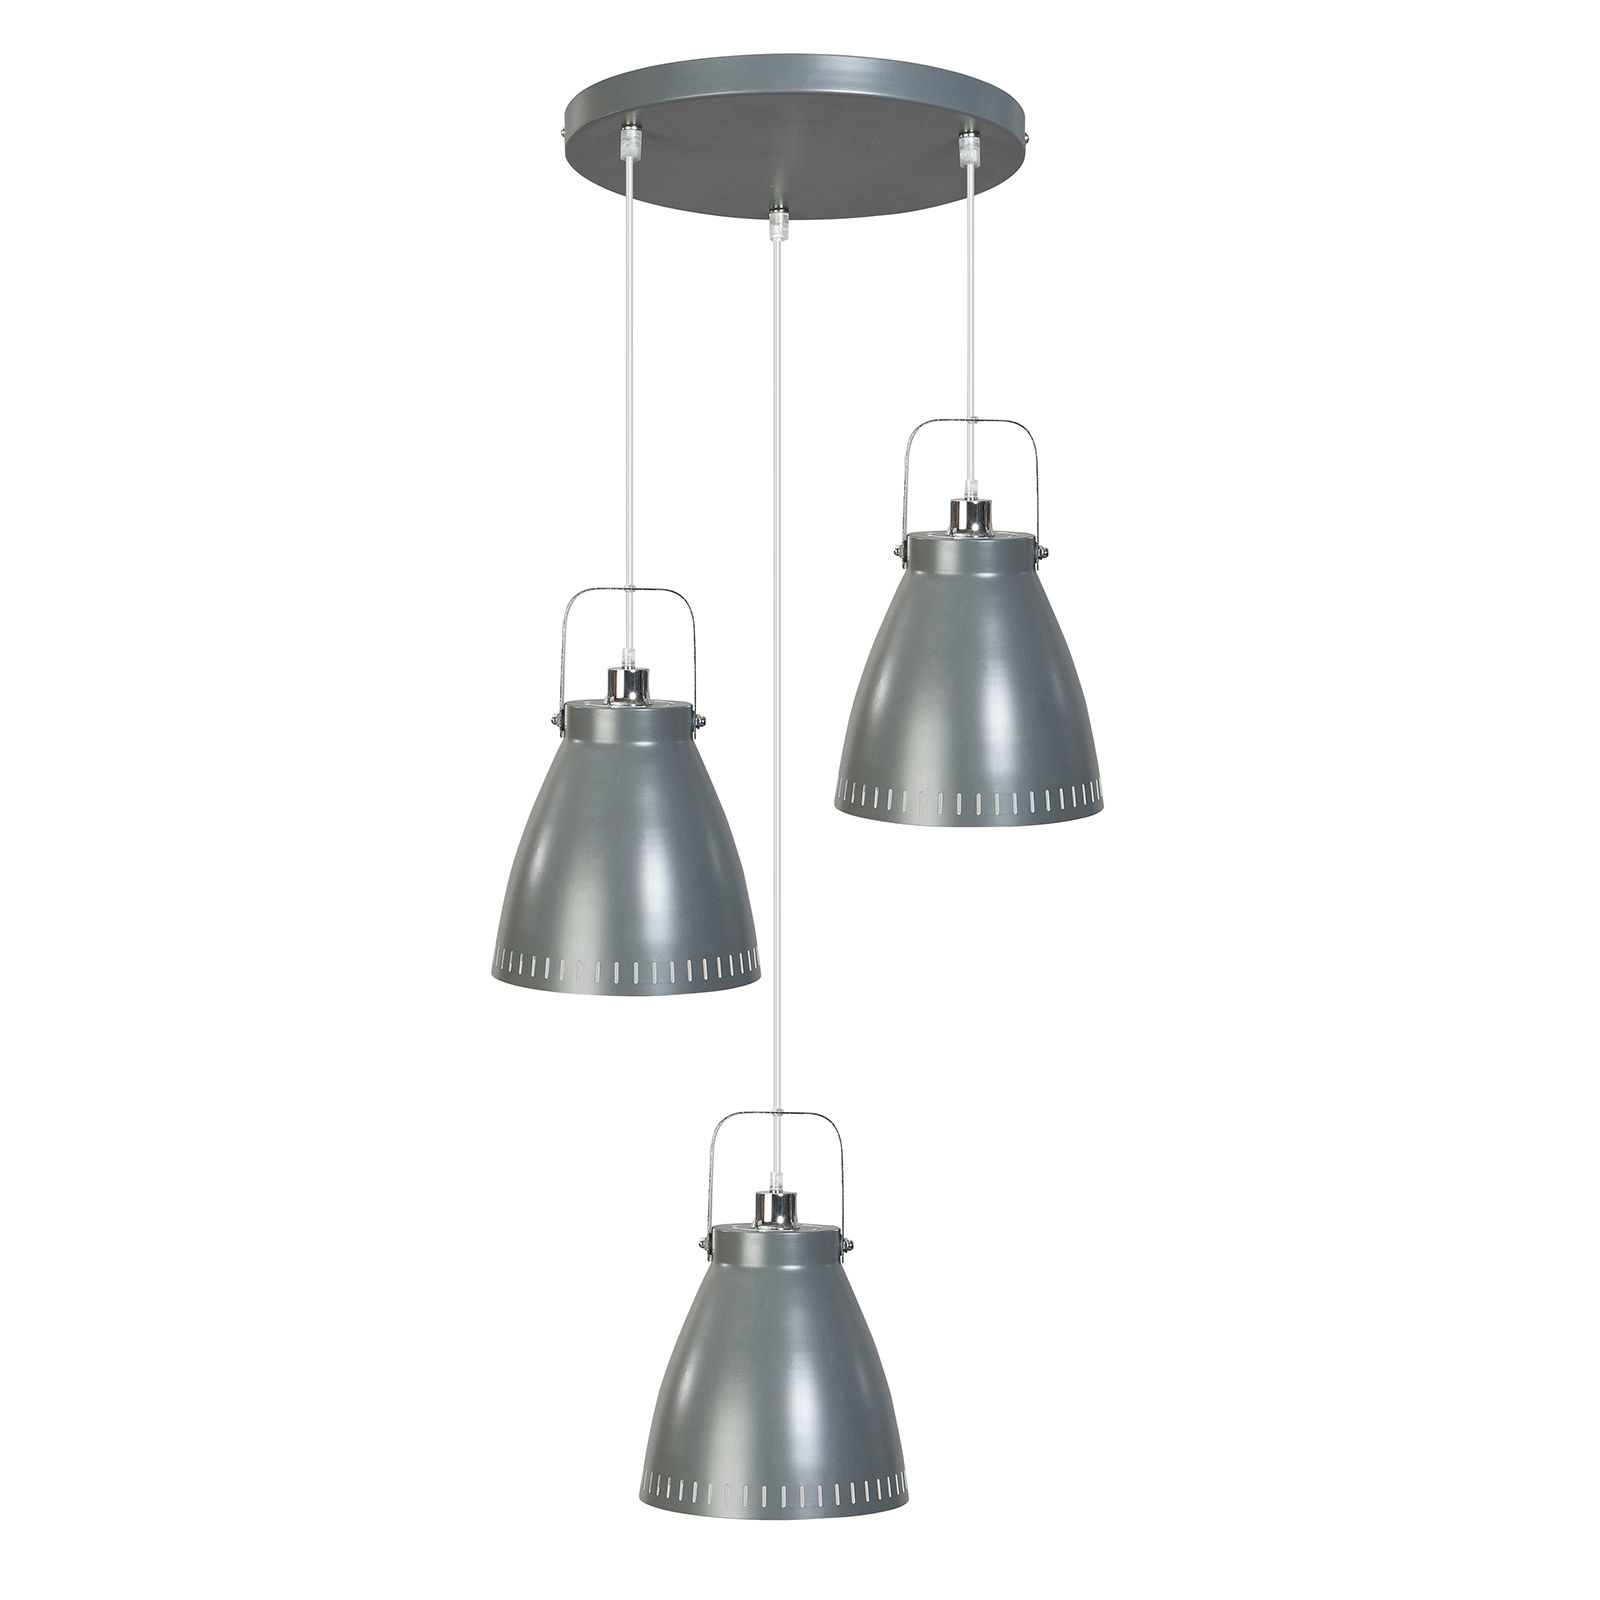 OUTLET - Acate hanglamp ETH 3x grijs/chroom rond